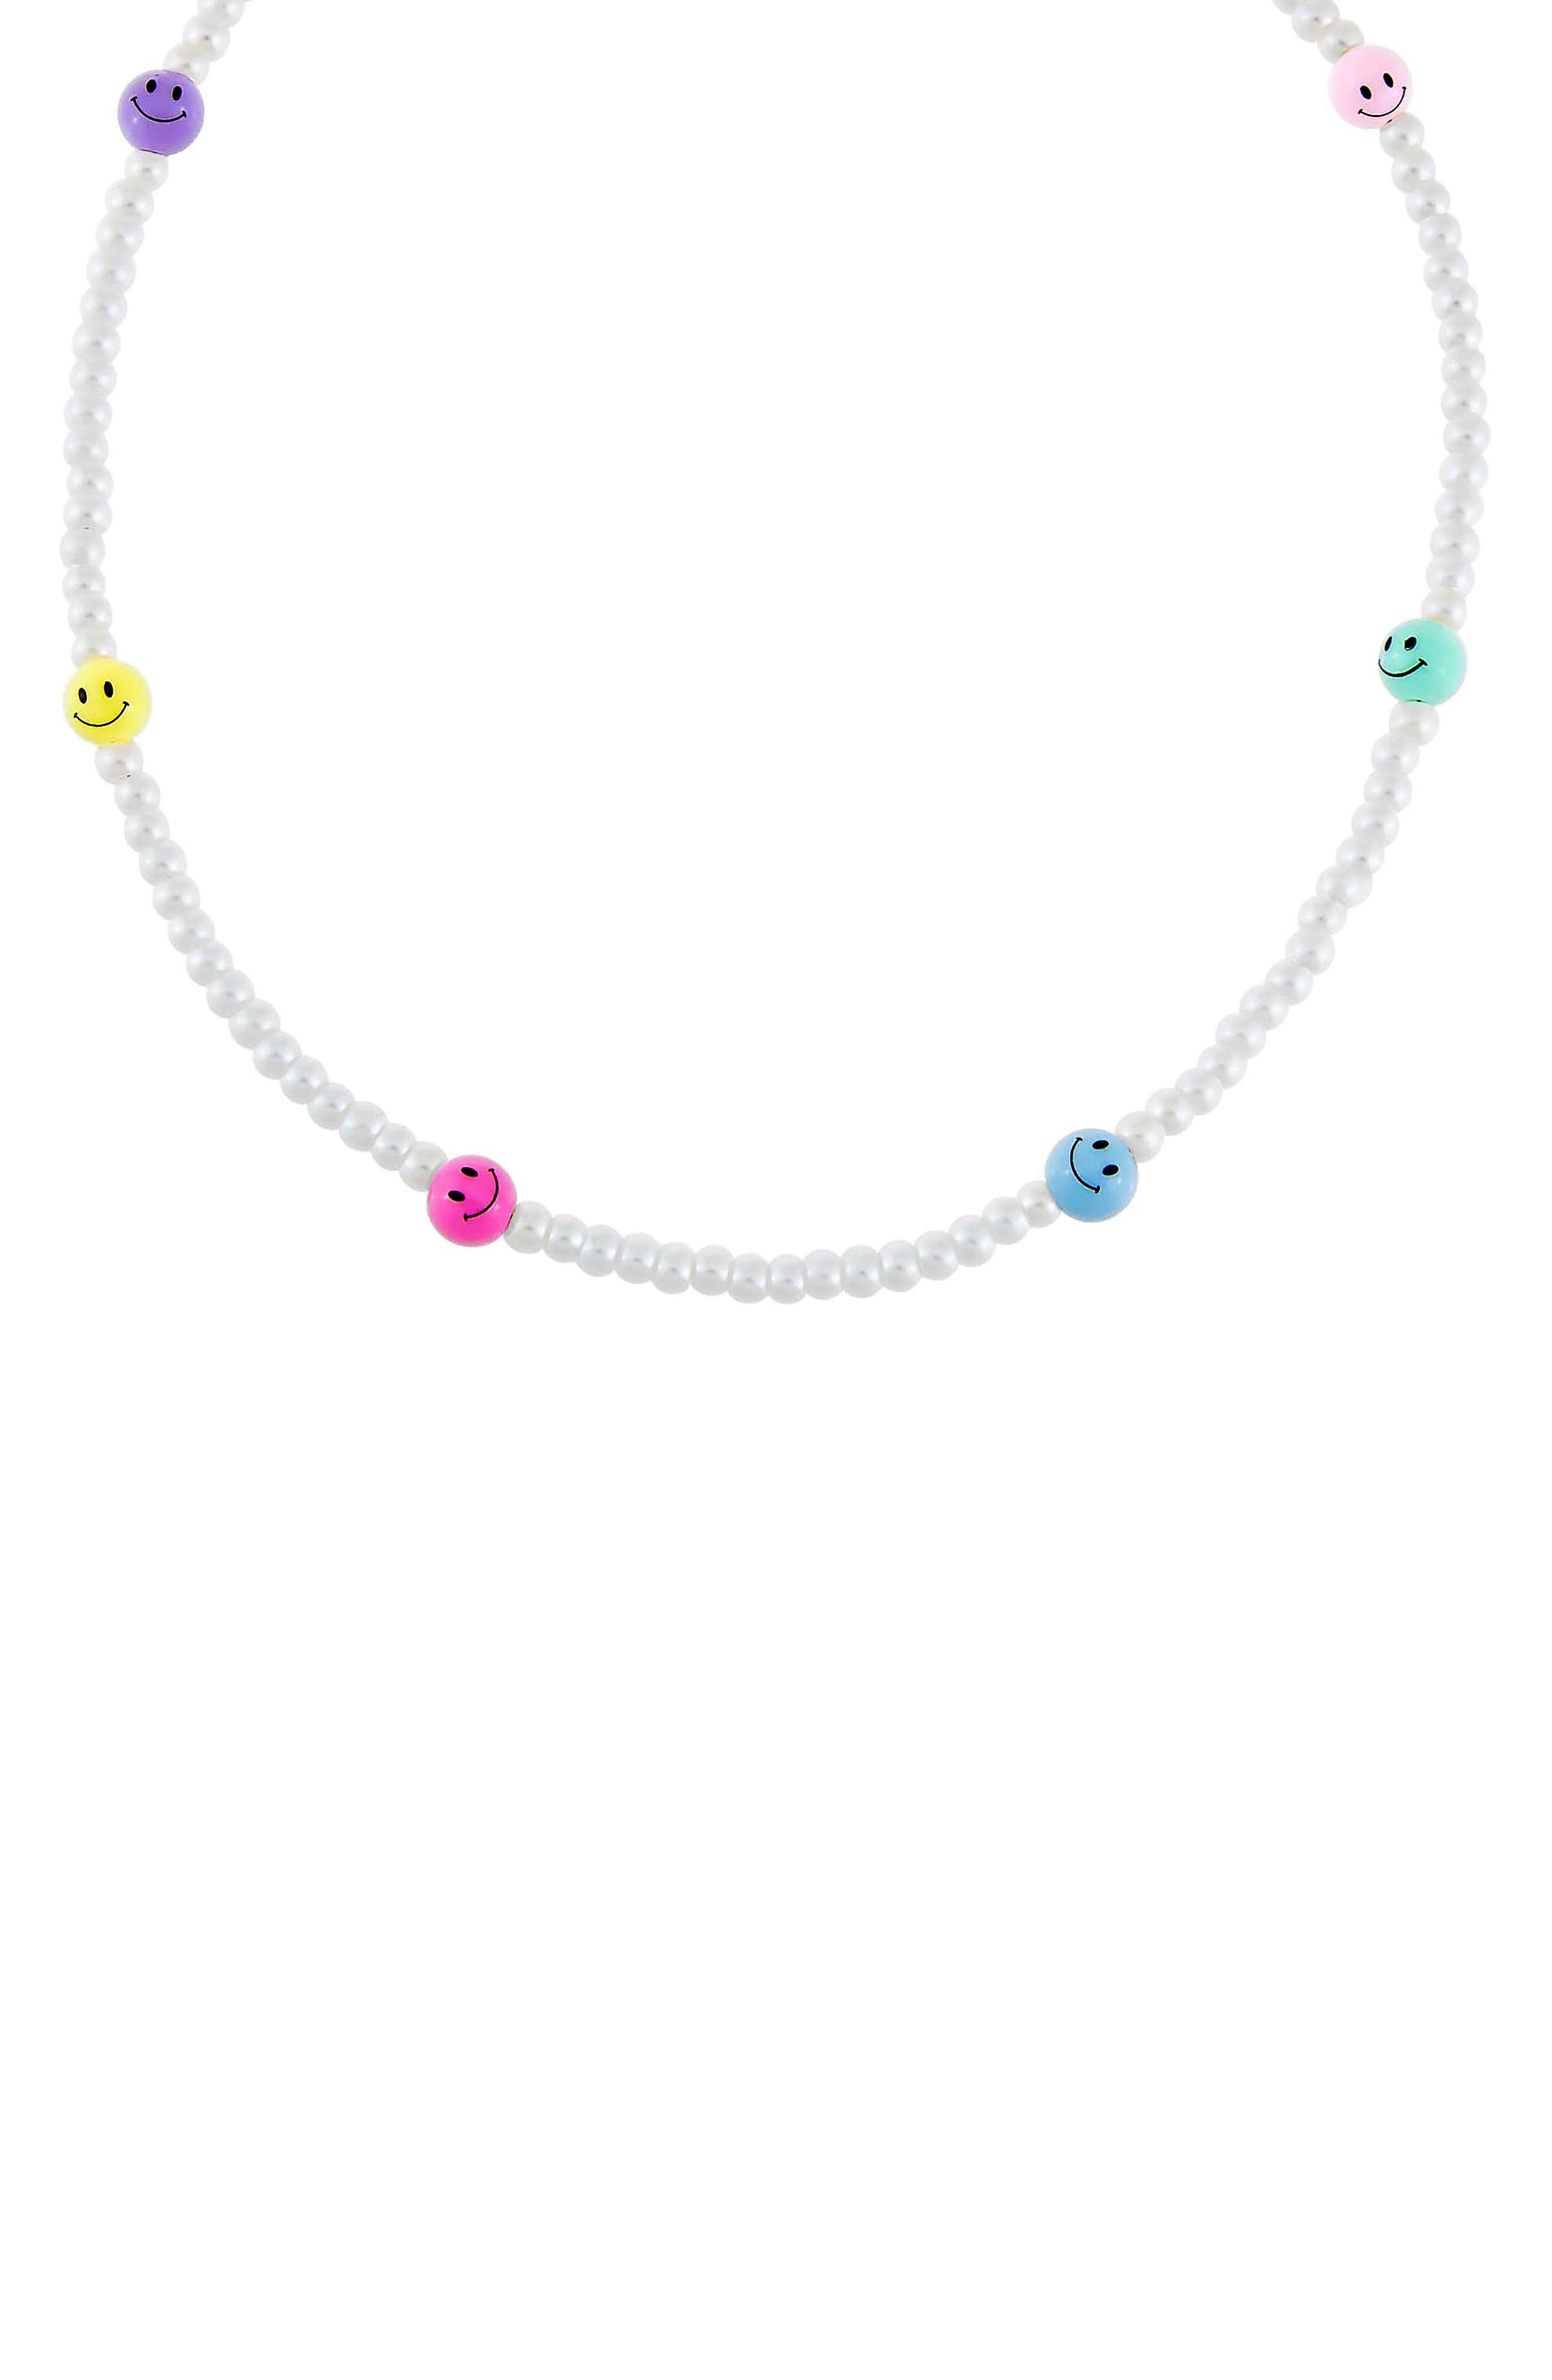 Women's Adina's Jewels Smiley Face & Imitation Pearl Necklace